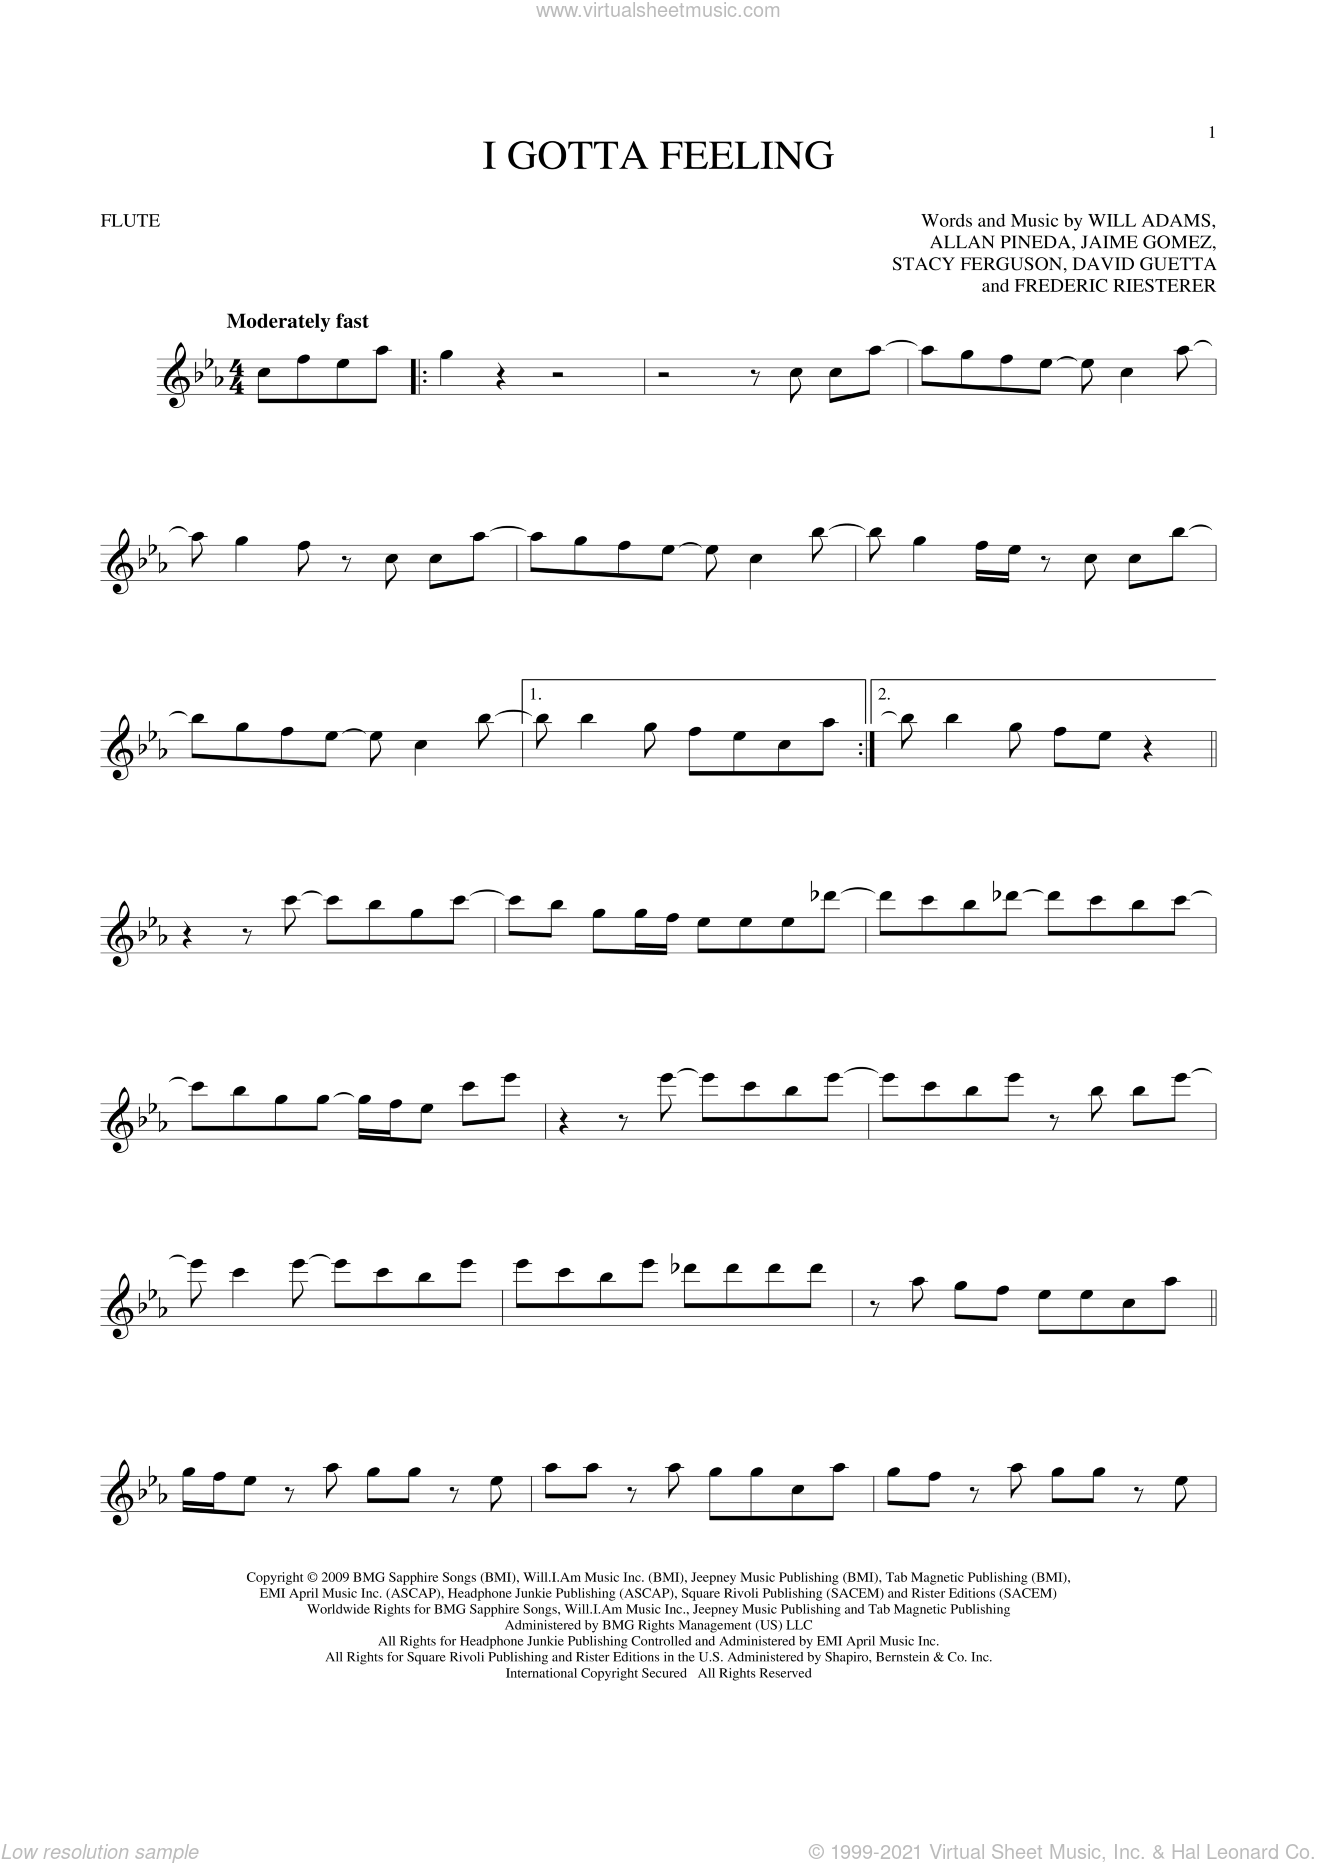 I Gotta Feeling sheet music for flute solo by Will Adams, Black Eyed Peas, Allan Pineda, David Guetta, Frederic Riesterer, Jaime Gomez and Stacy Ferguson, intermediate skill level